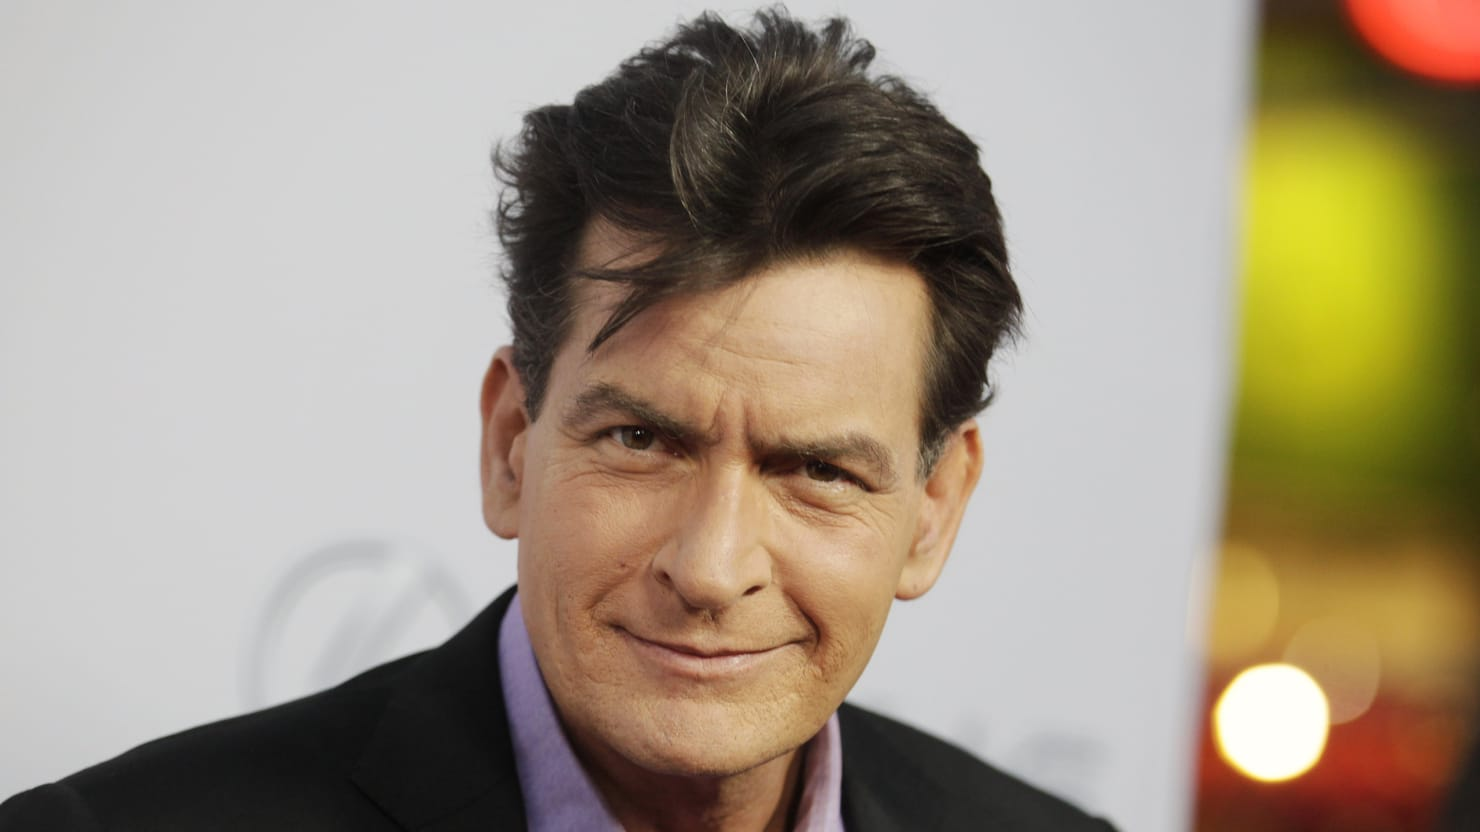 Charlie Sheen's Racist Obama Rant: 'Barry Satera Kenya'